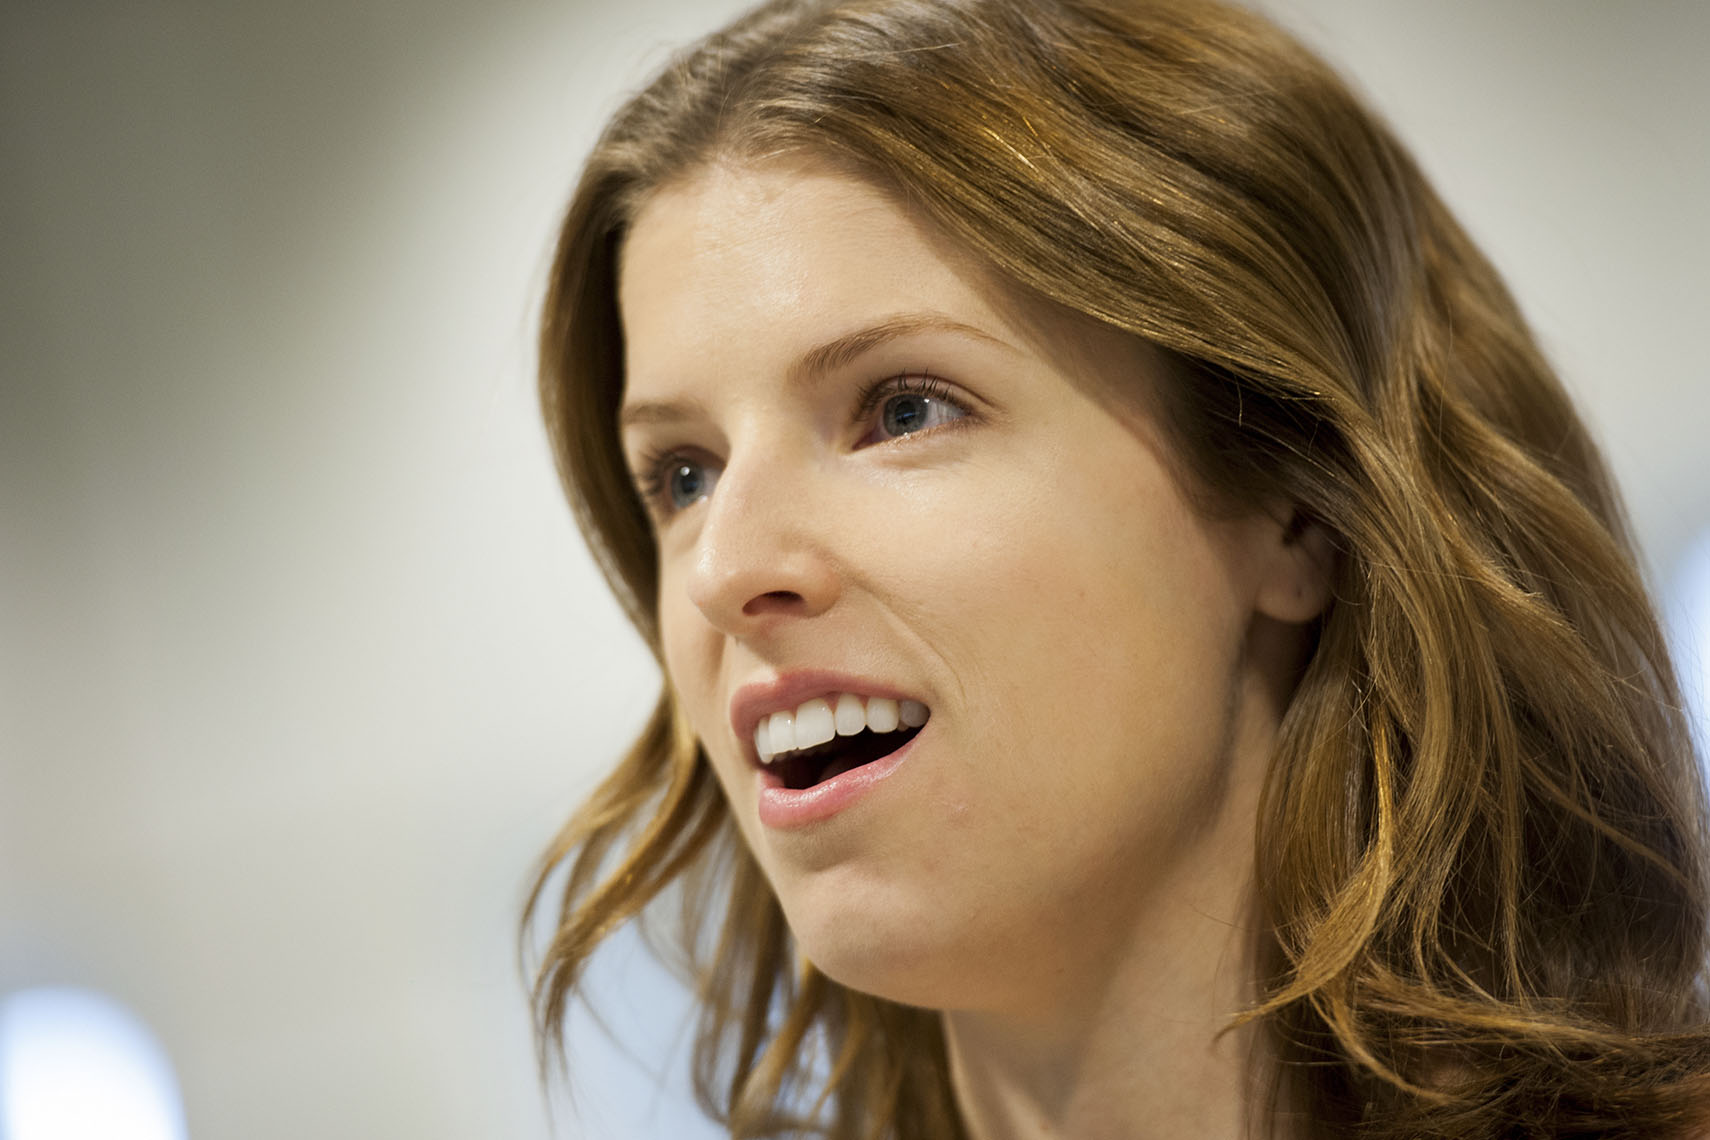 Close-up Photos of Anna Kendrick | Washington Photographer Aaron Clamage